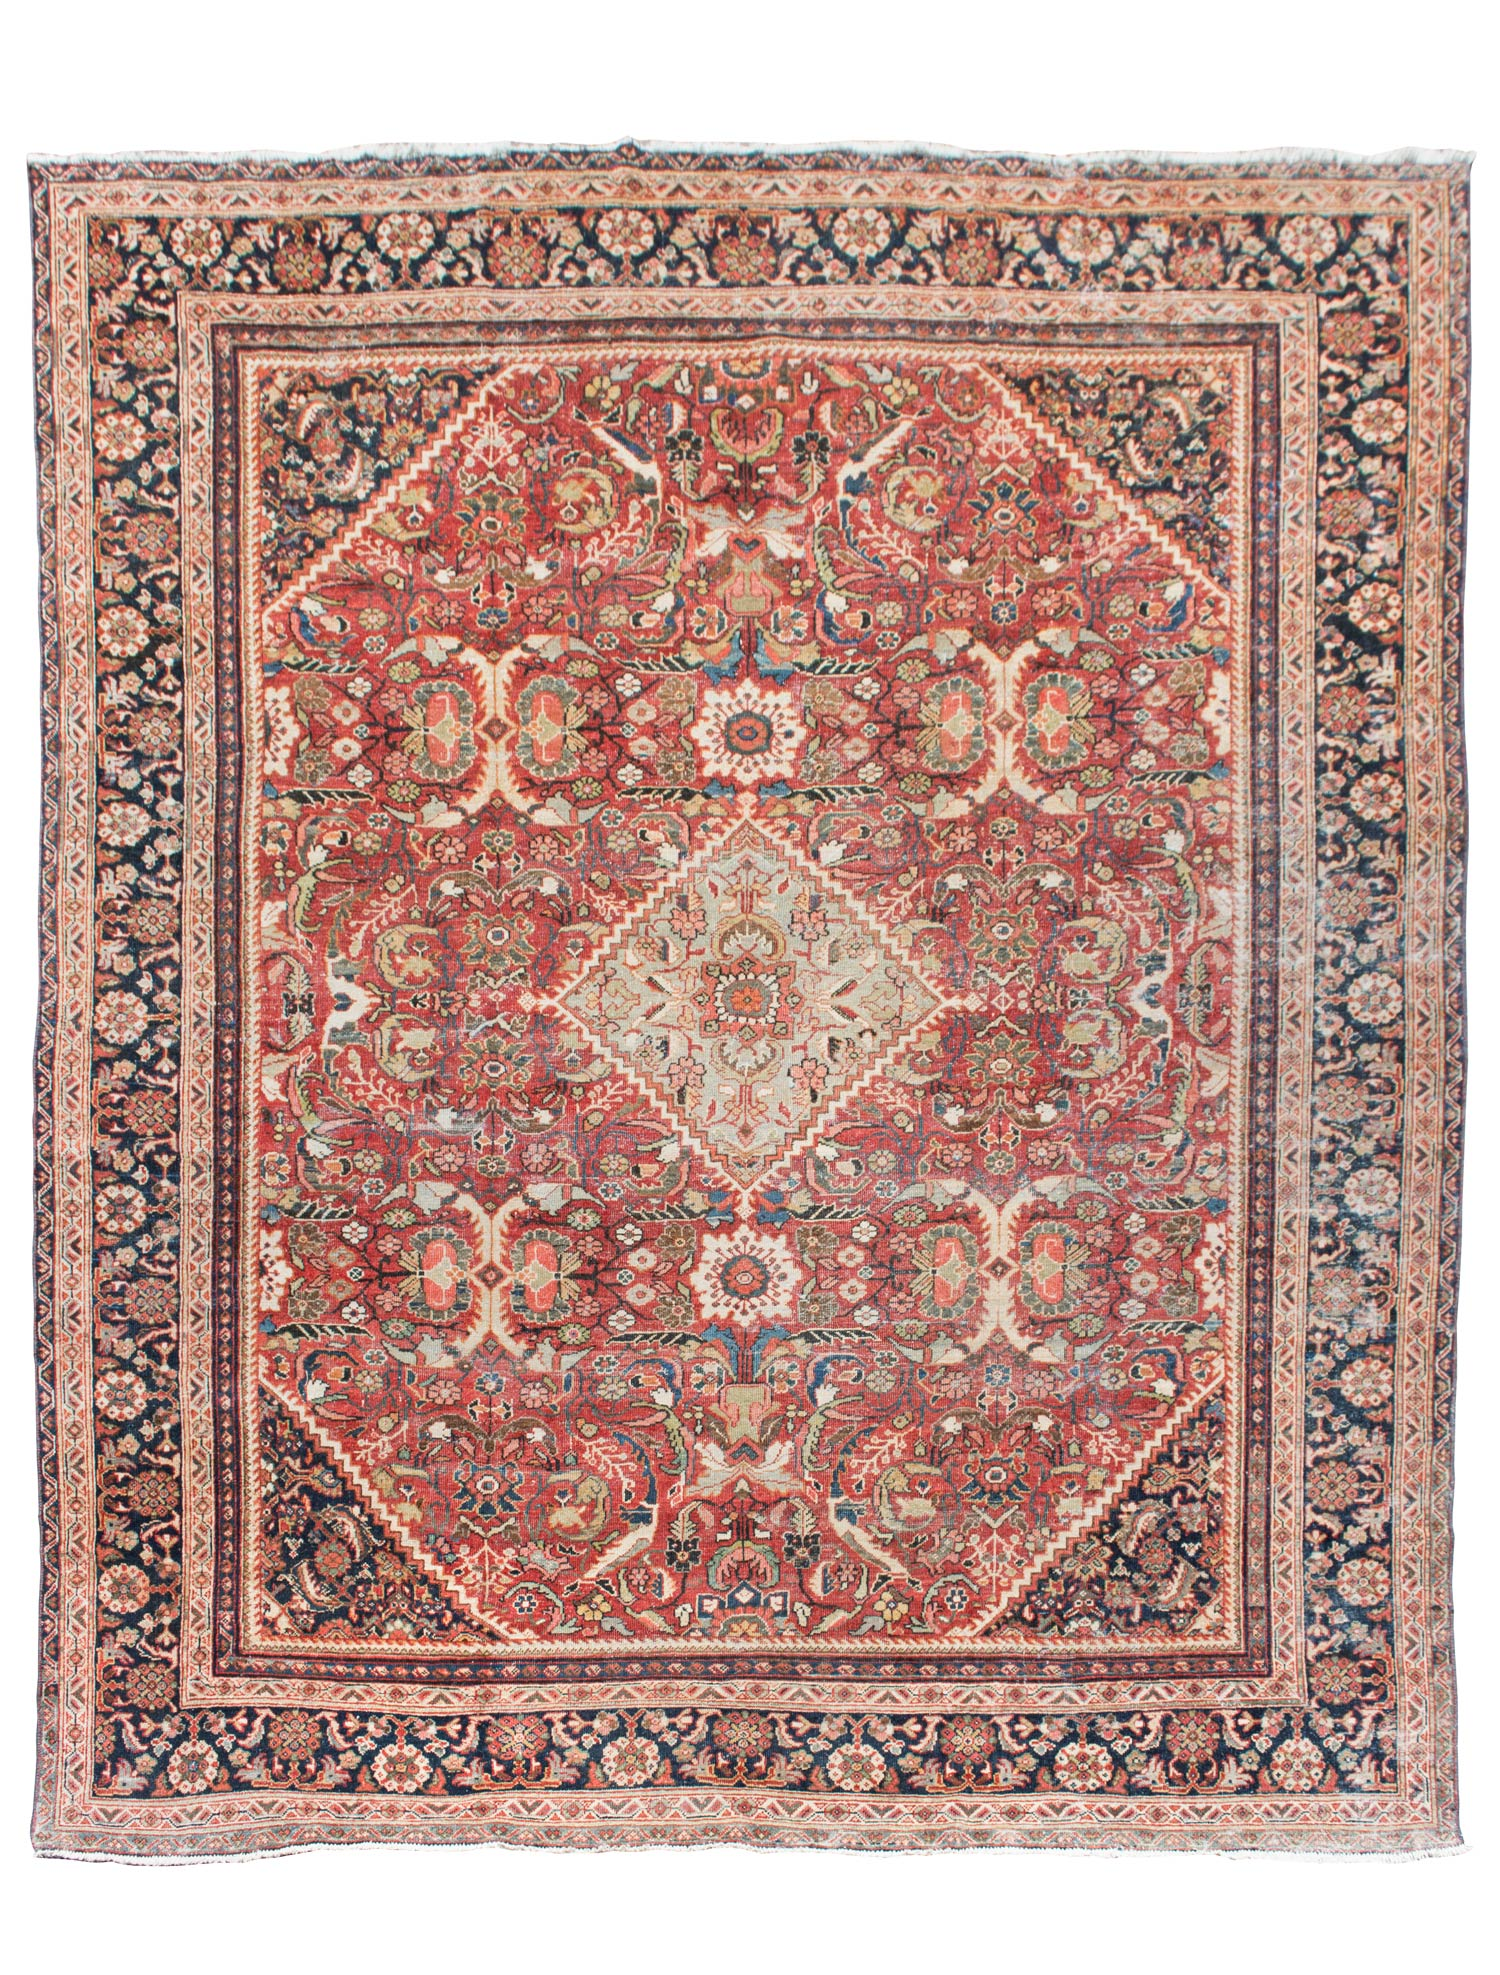 semi antique persian mahal - ae rugs inc Antique Rugs